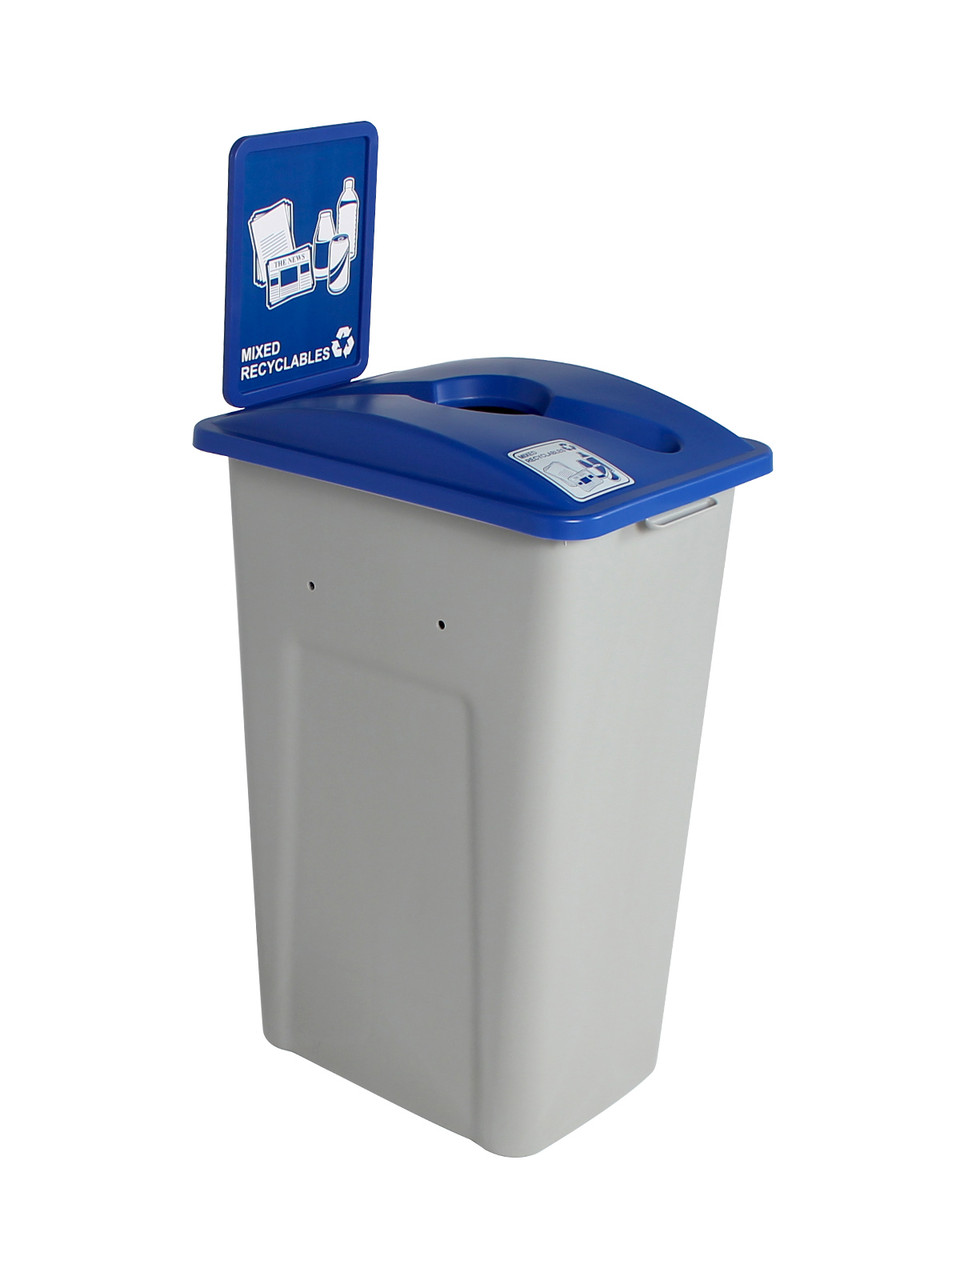 32 Gallon Plastic XL Simple Sort Single Home & Office Recycling Bin WWXL (4 Colors)